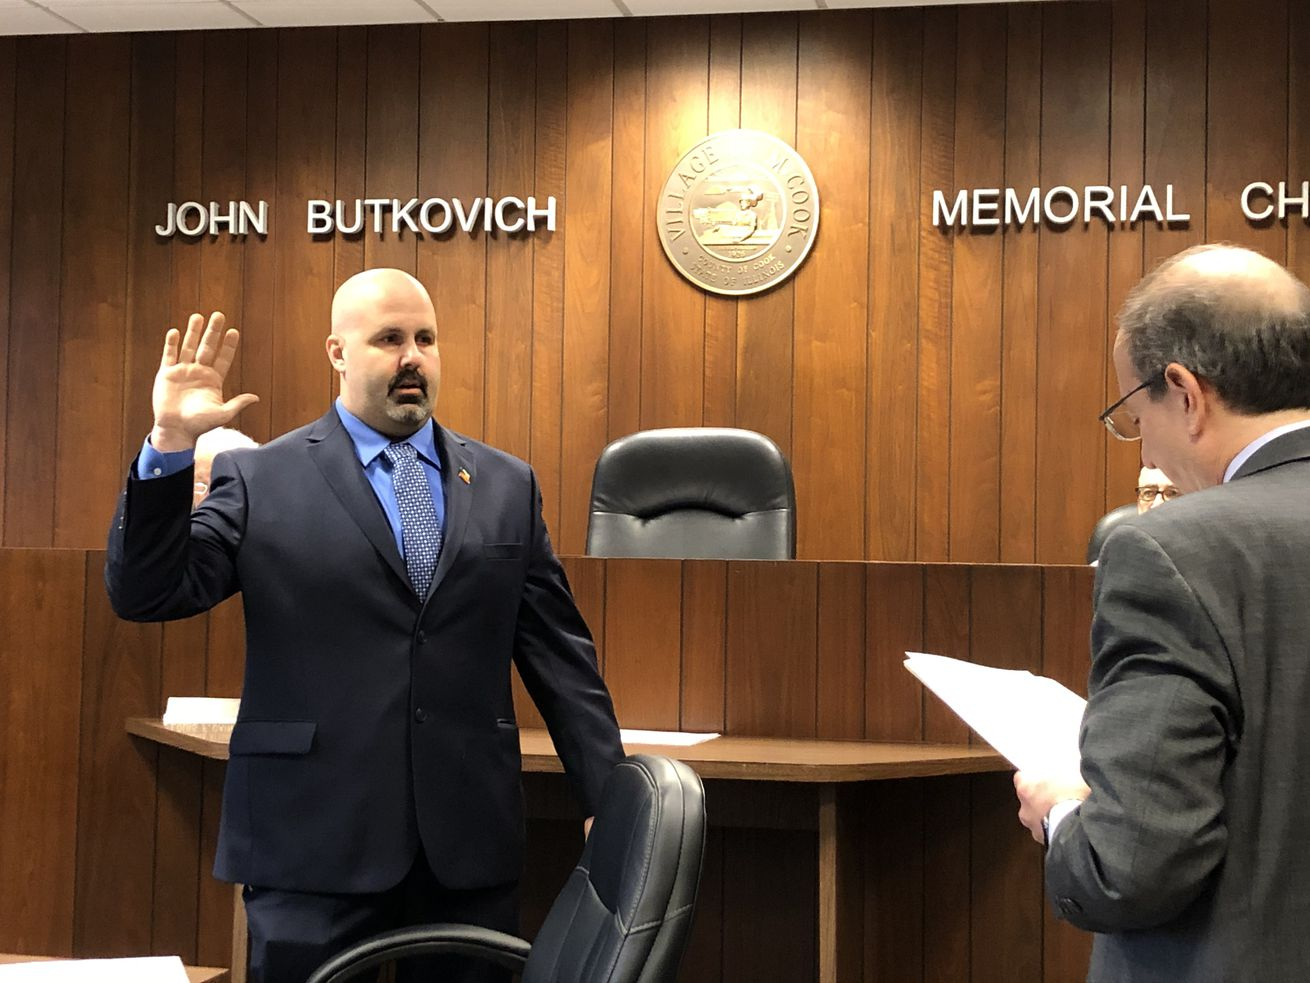 McMeet the new boss: Will new McCook mayor kill the goose that lays the golden eggers?